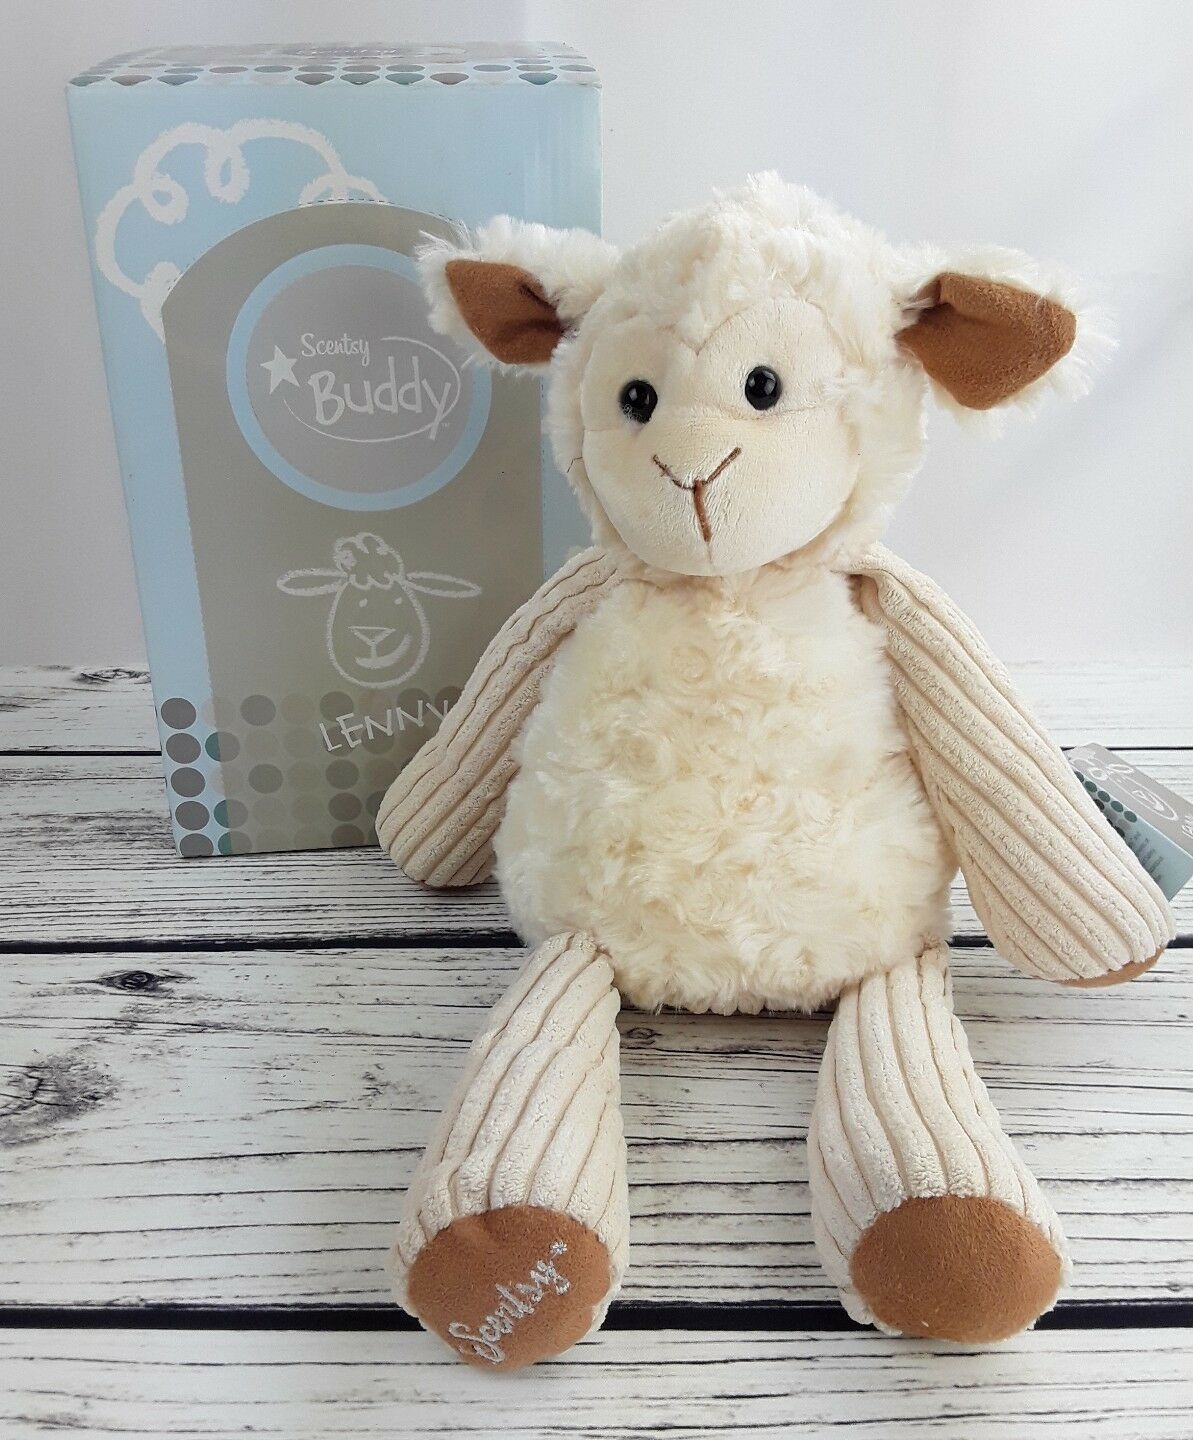 Scentsy Buddy LENNY The LAMB New in Box with Tags Retired 2010